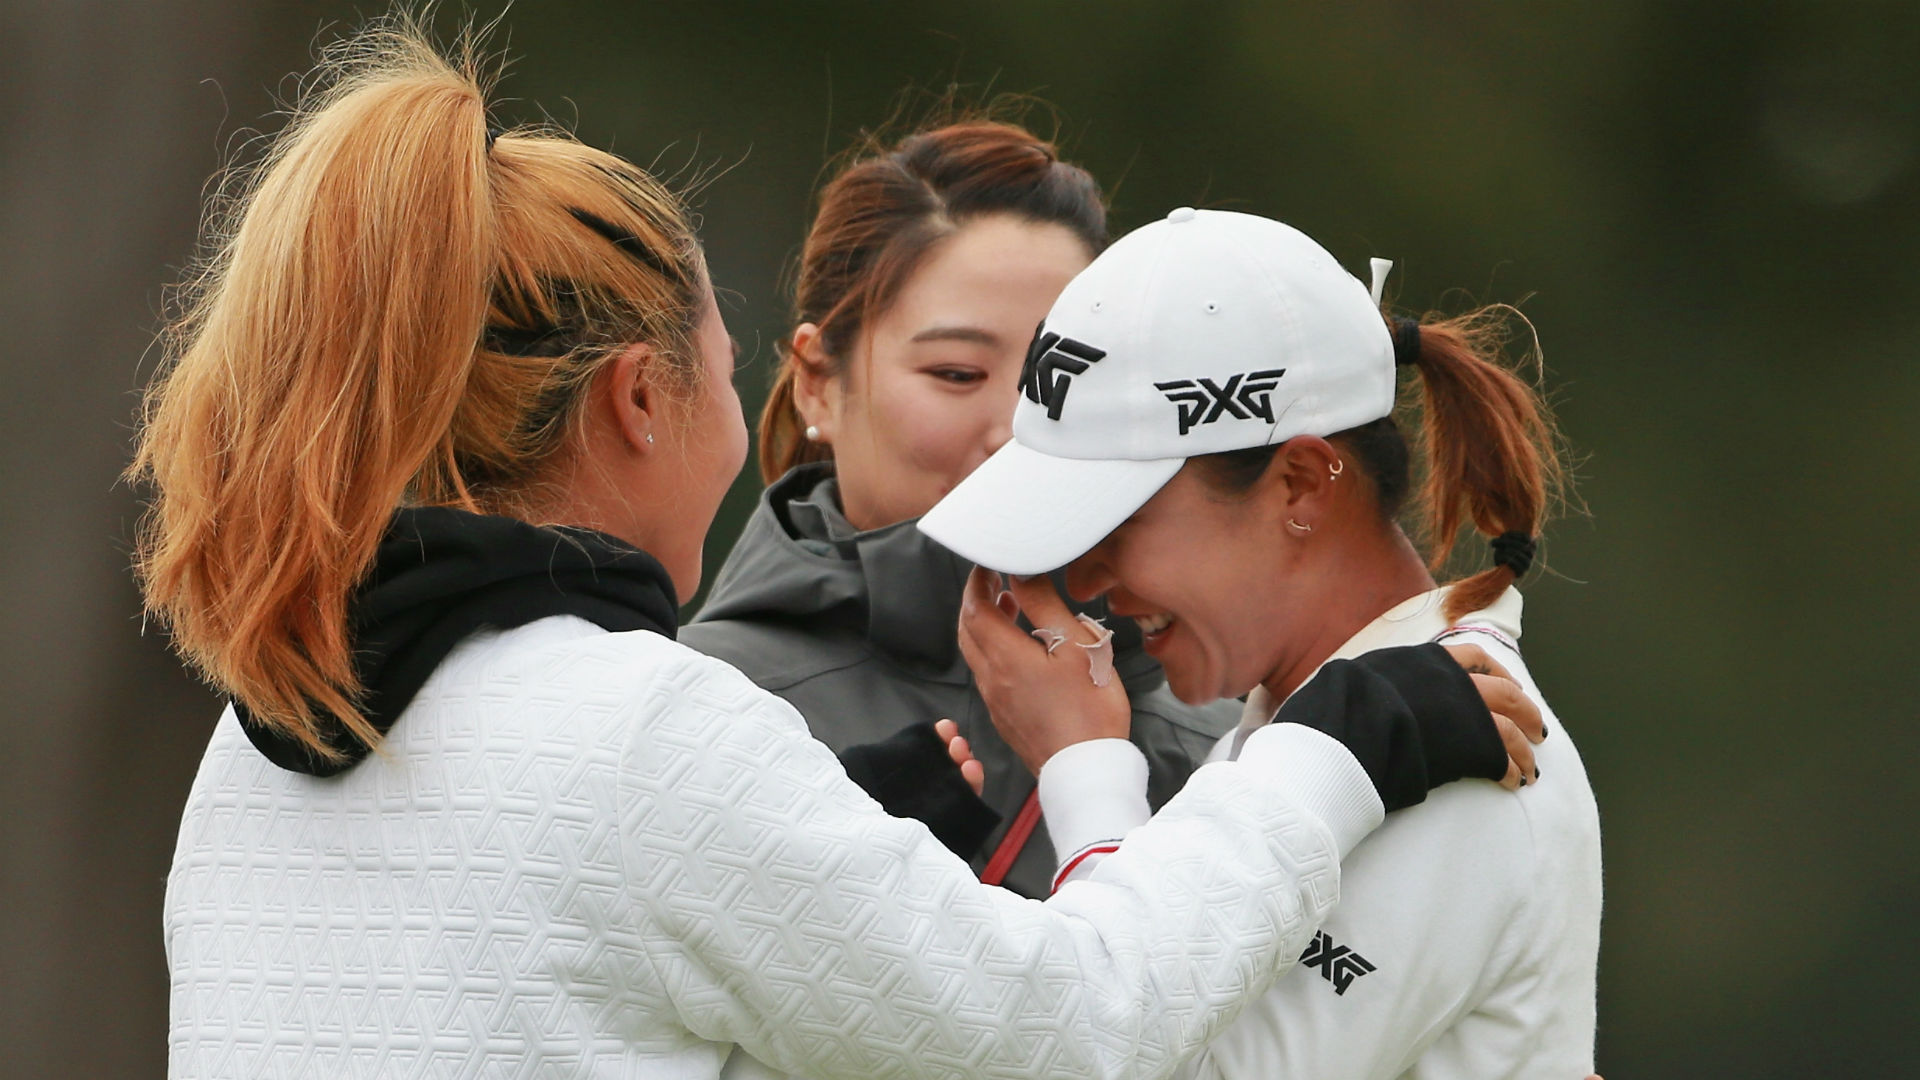 After two years without a title on the LPGA Tour, Lydia Ko was back in the winner's enclosure on Sunday, bringing plenty of tears.